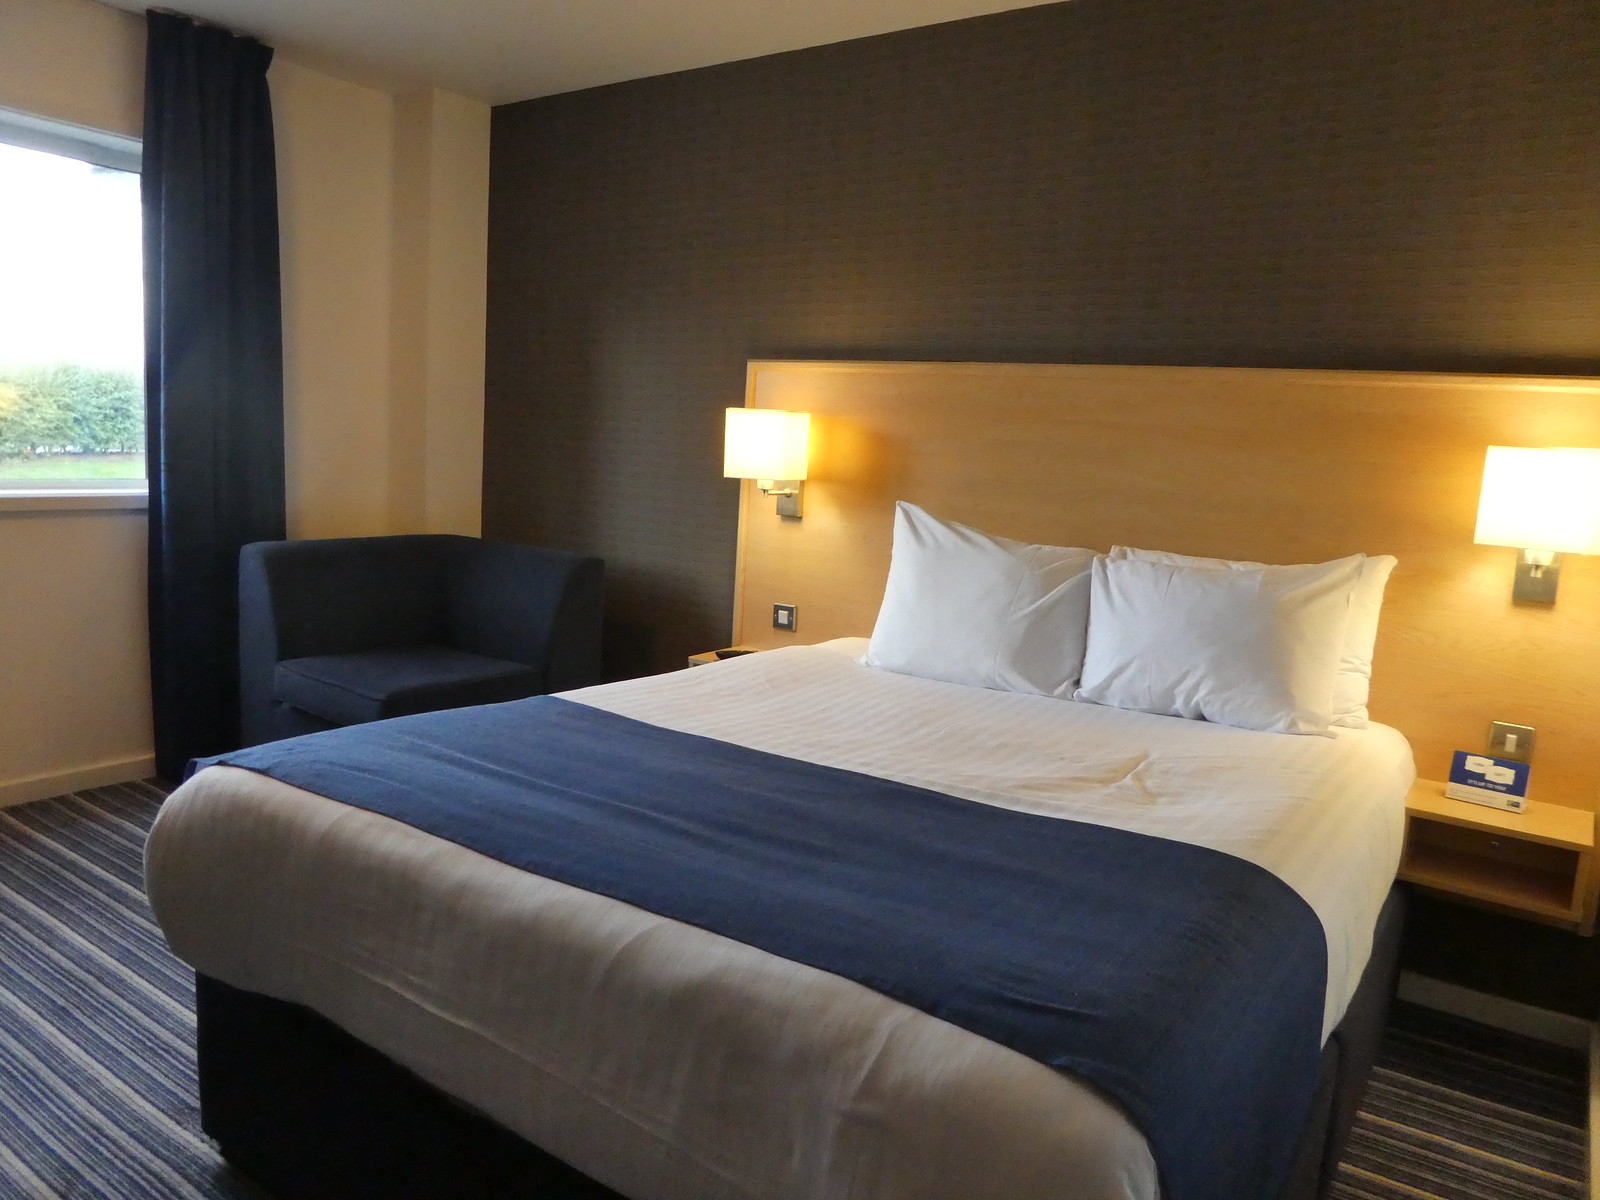 Holiday Inn Express, Manchester Airport